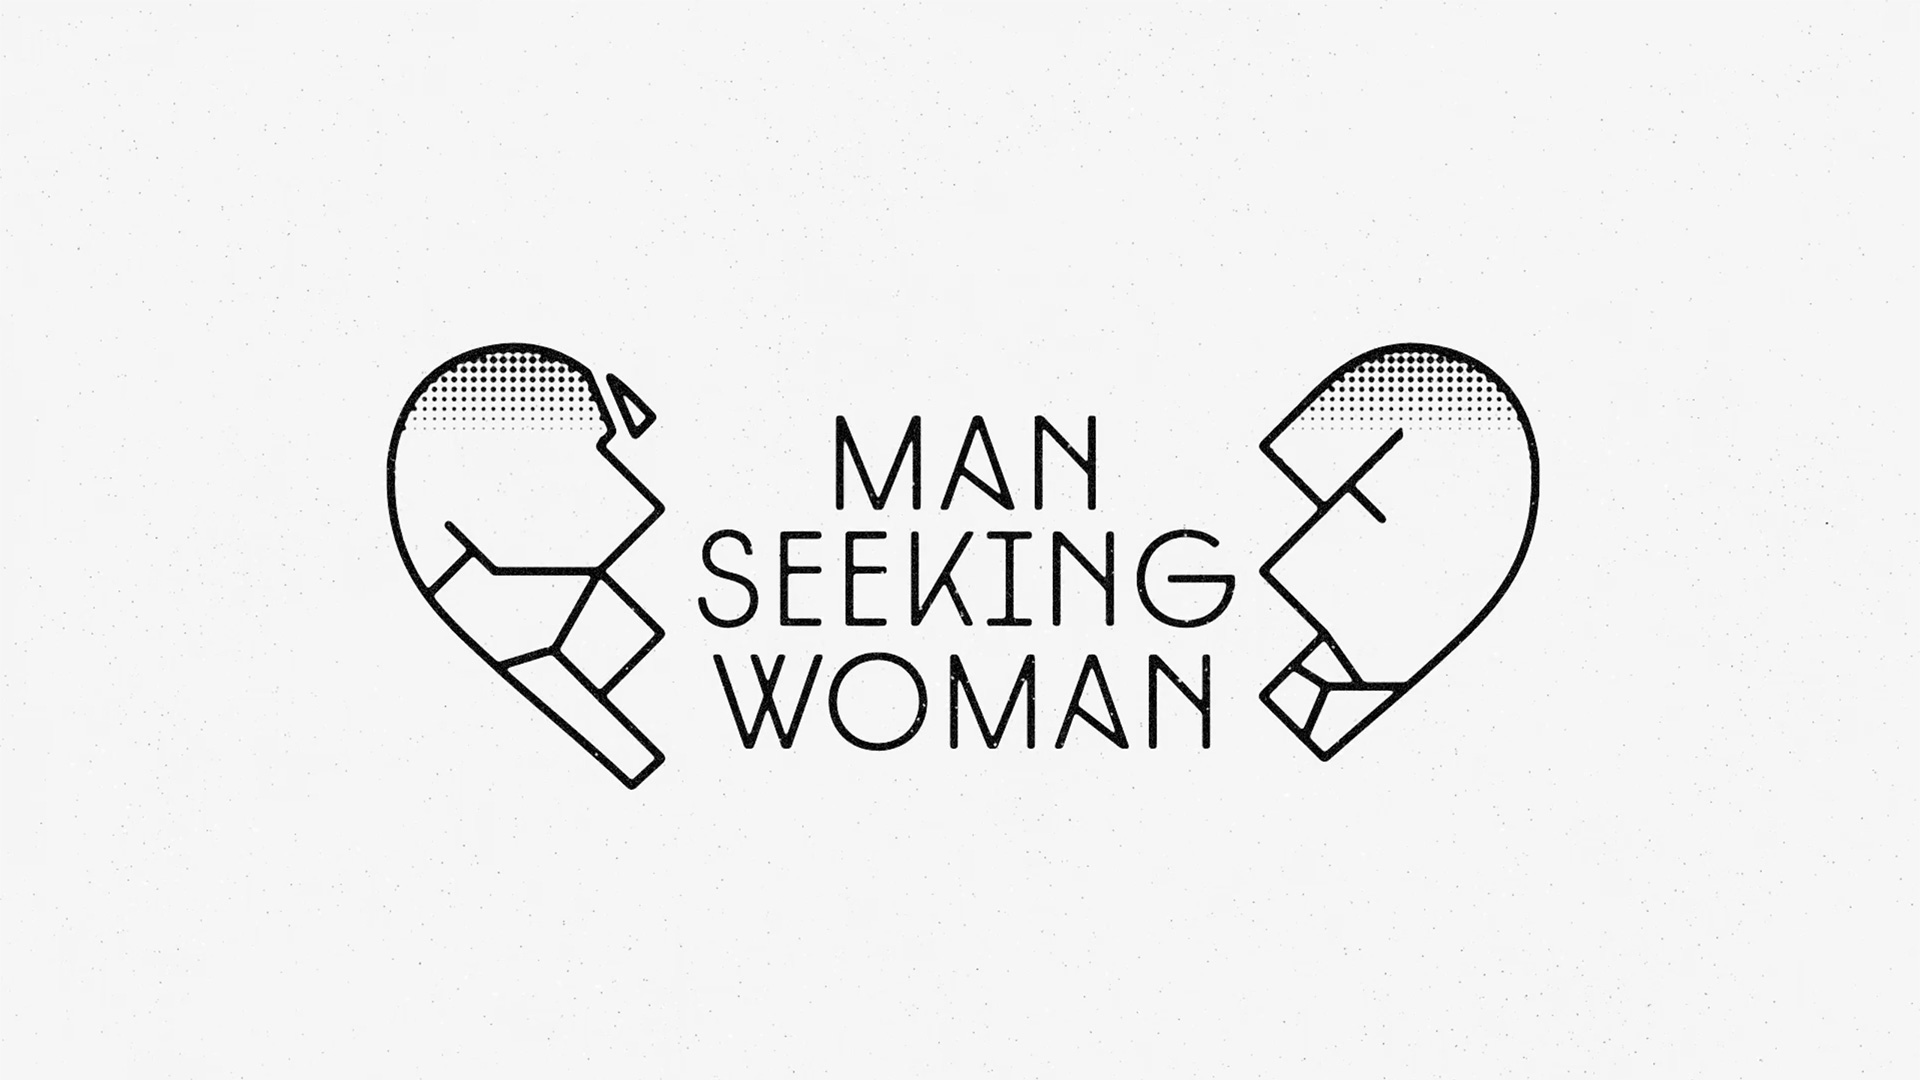 Men seeking women move